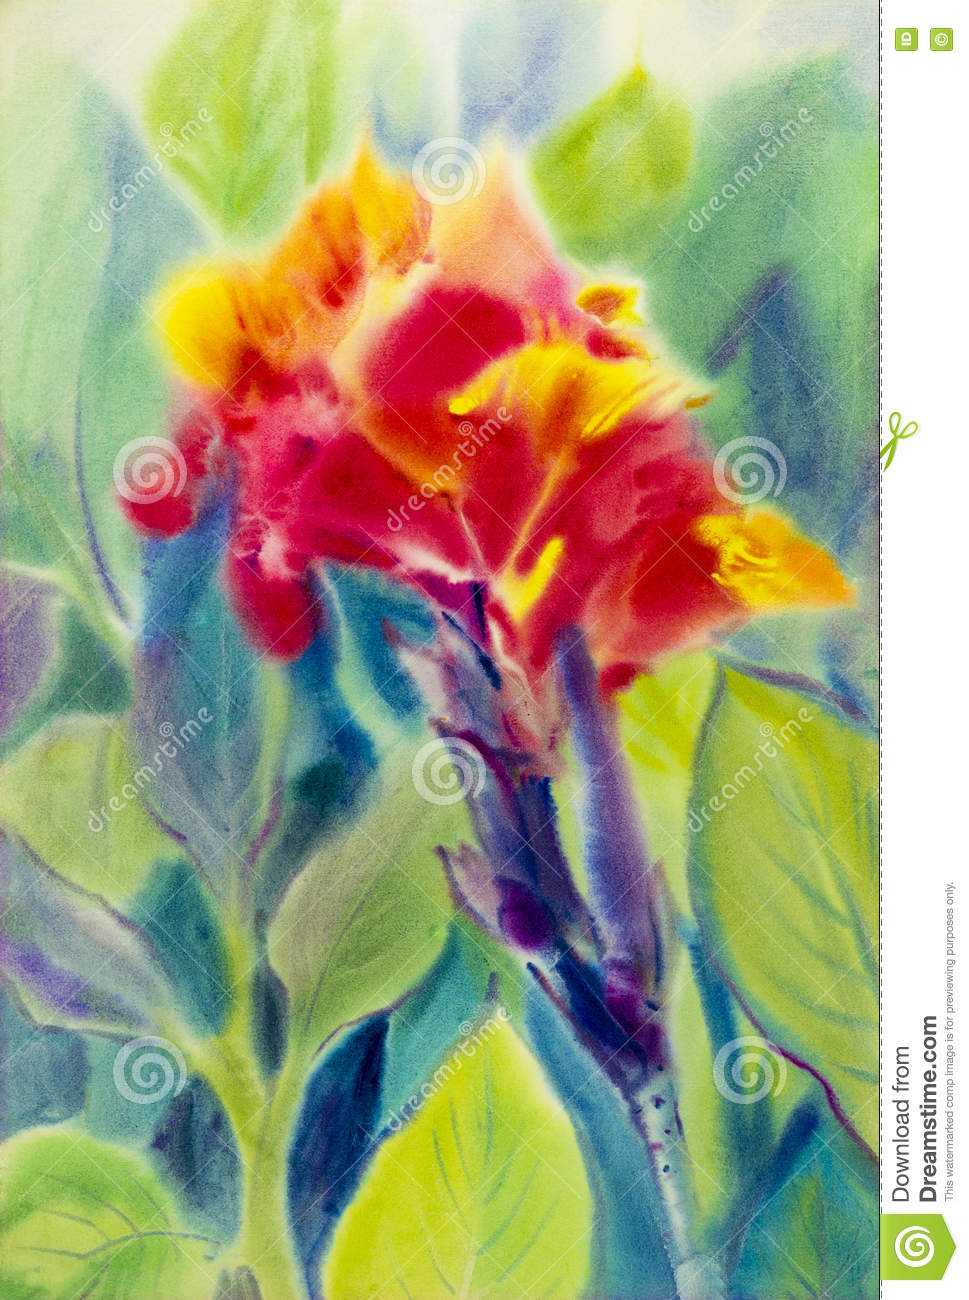 Watercolor Painting Original Flower Colorful Of Red Canna Lily